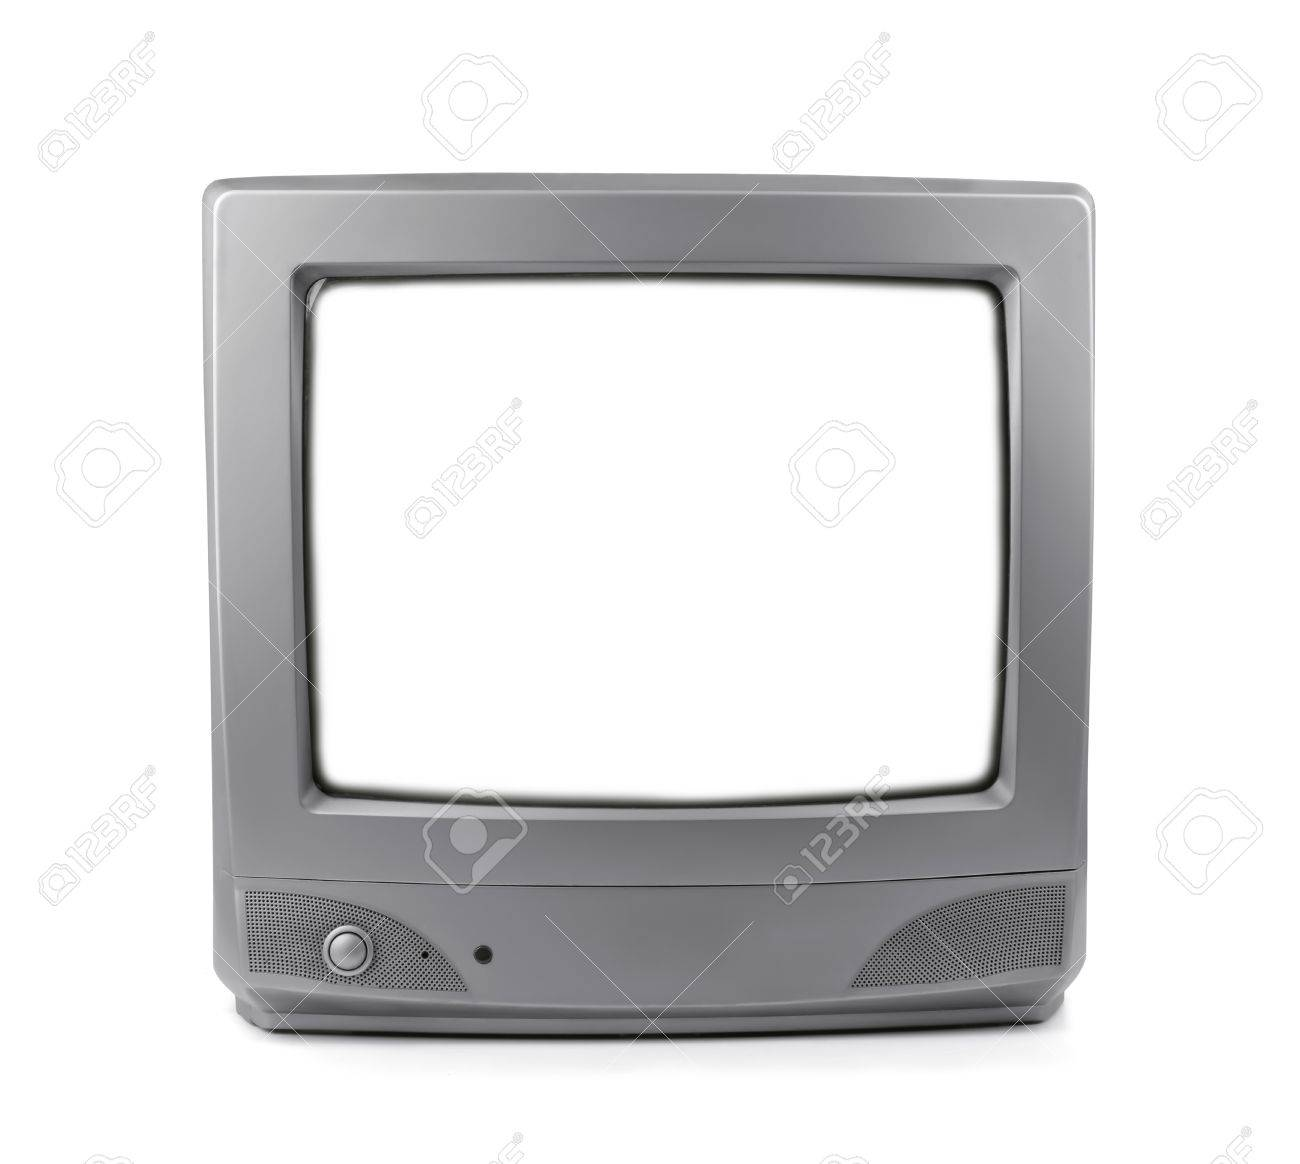 old crt tv with